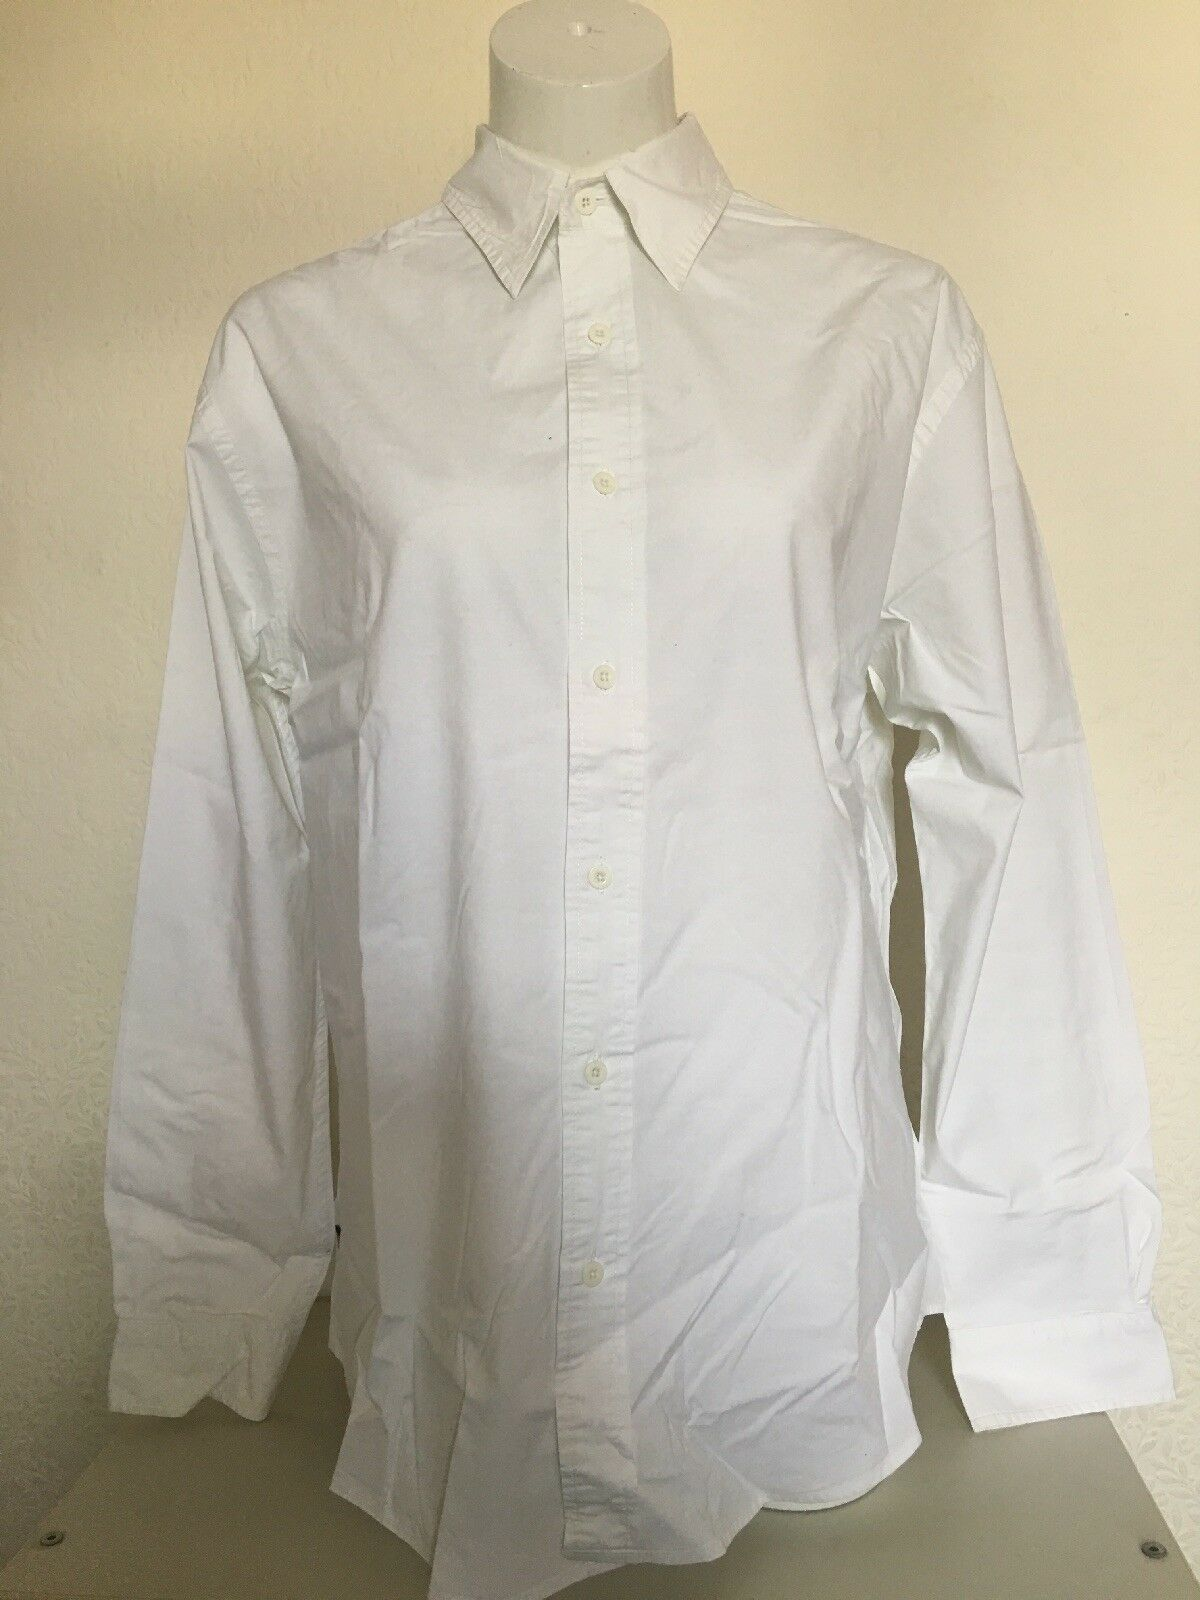 Mens Polo Jeans Co. Ralph Lauren Shirt. Size Large, In Great Condition